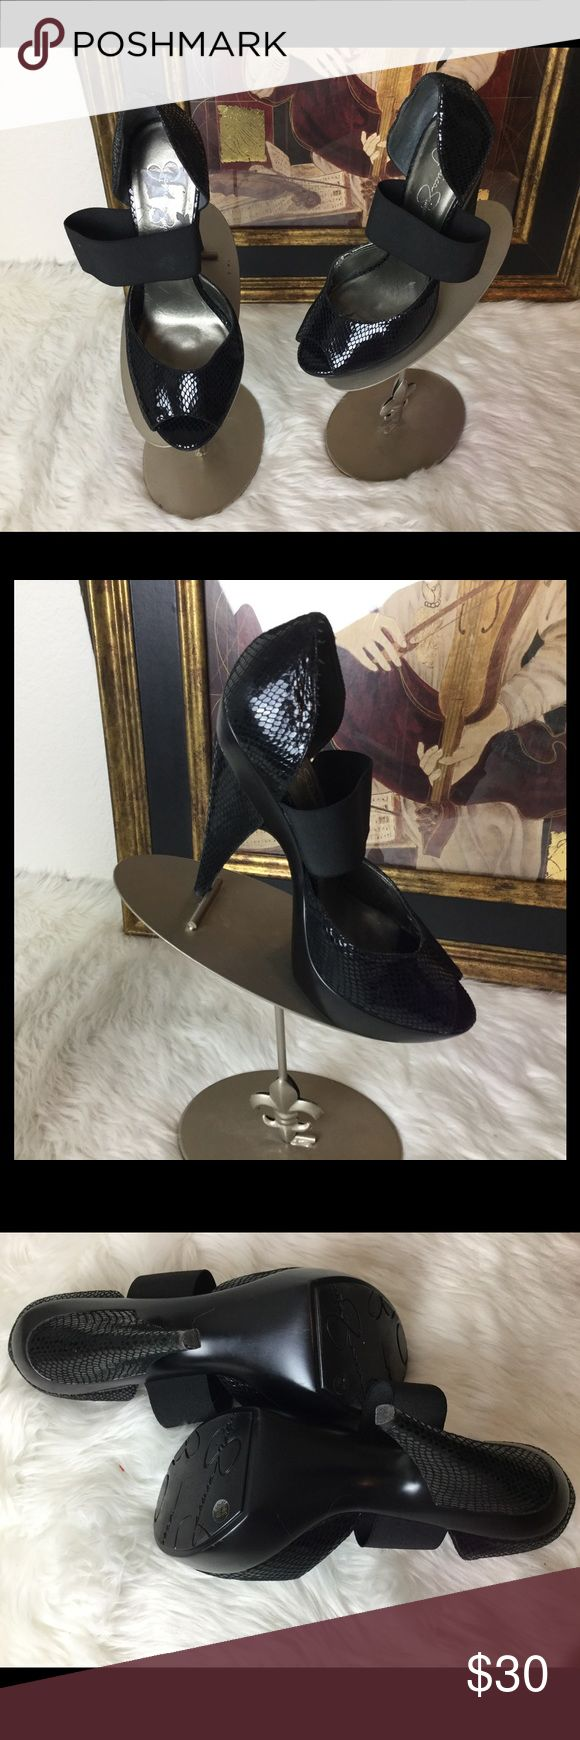 """NWOT Jessica Simpson Black High Heel Shoes Sz 8.5 Brand New Check out these awesome high heel shoes.  Sz 8.5. Heel height 5"""". Platform 1"""". Jessica Simpson Shoes Heels"""